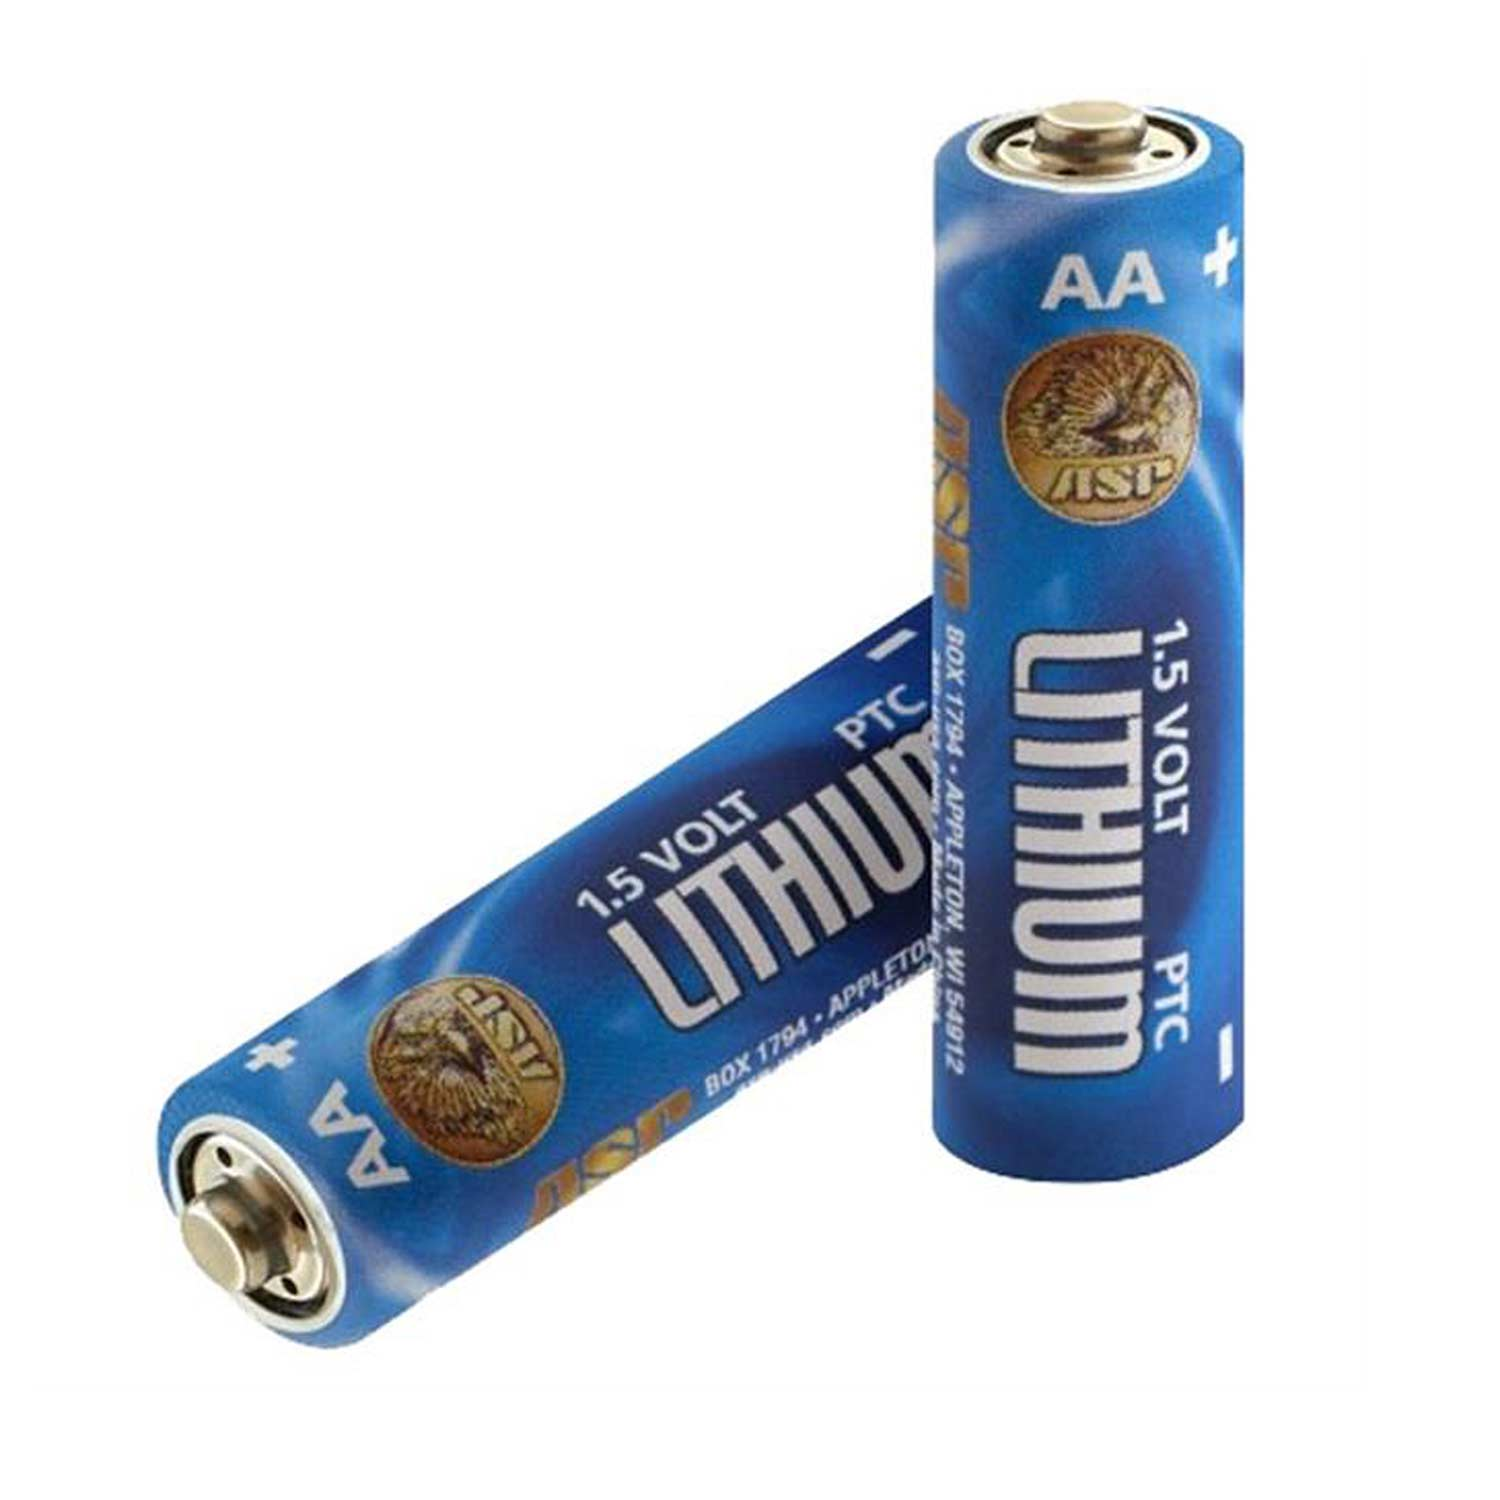 ASP AA/AAA 2 Pack Batteries